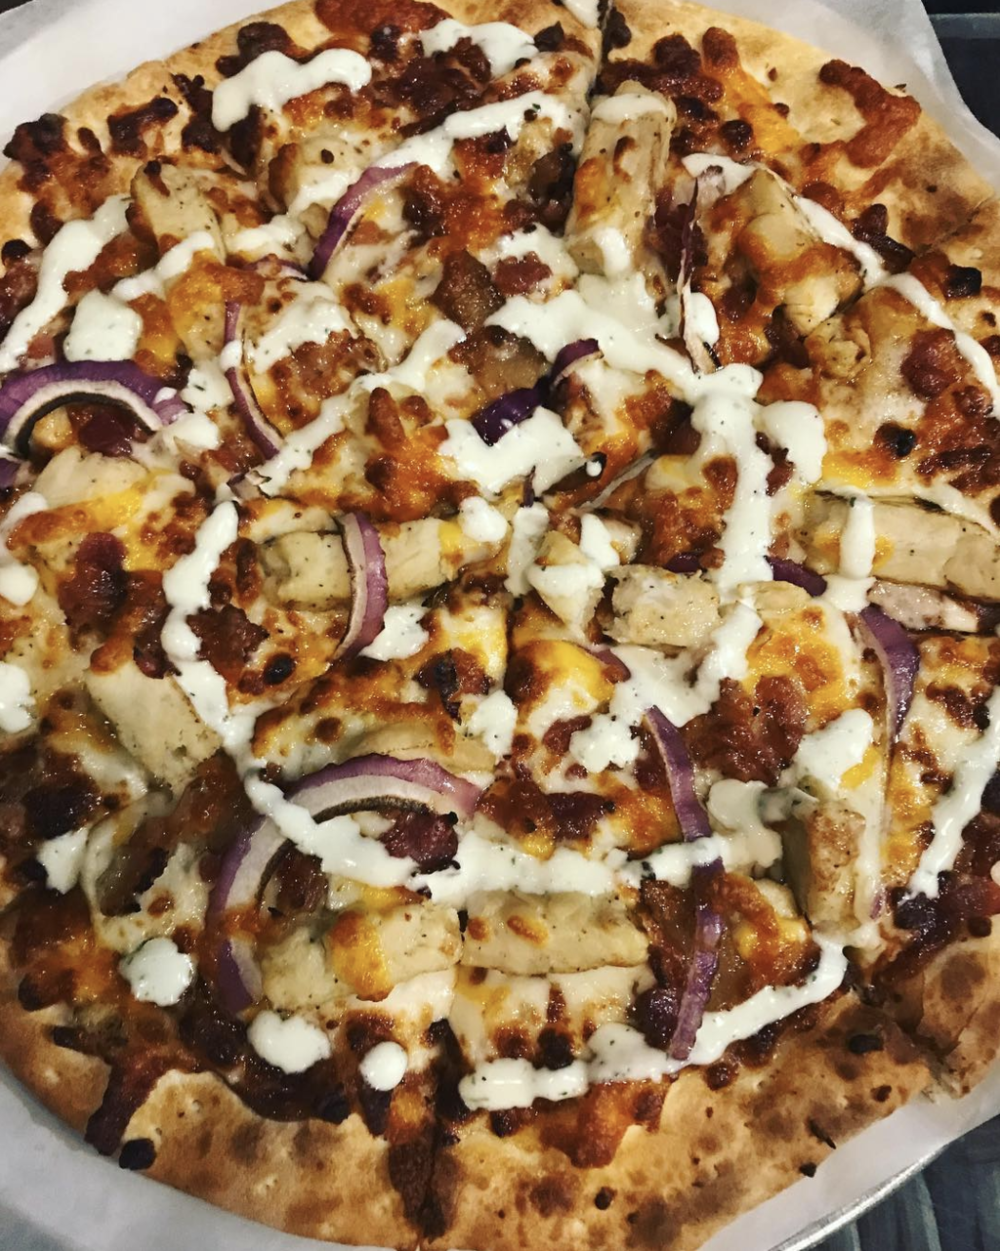 Chicken bacon ranch pizza was on special at @backyardonbell last week.